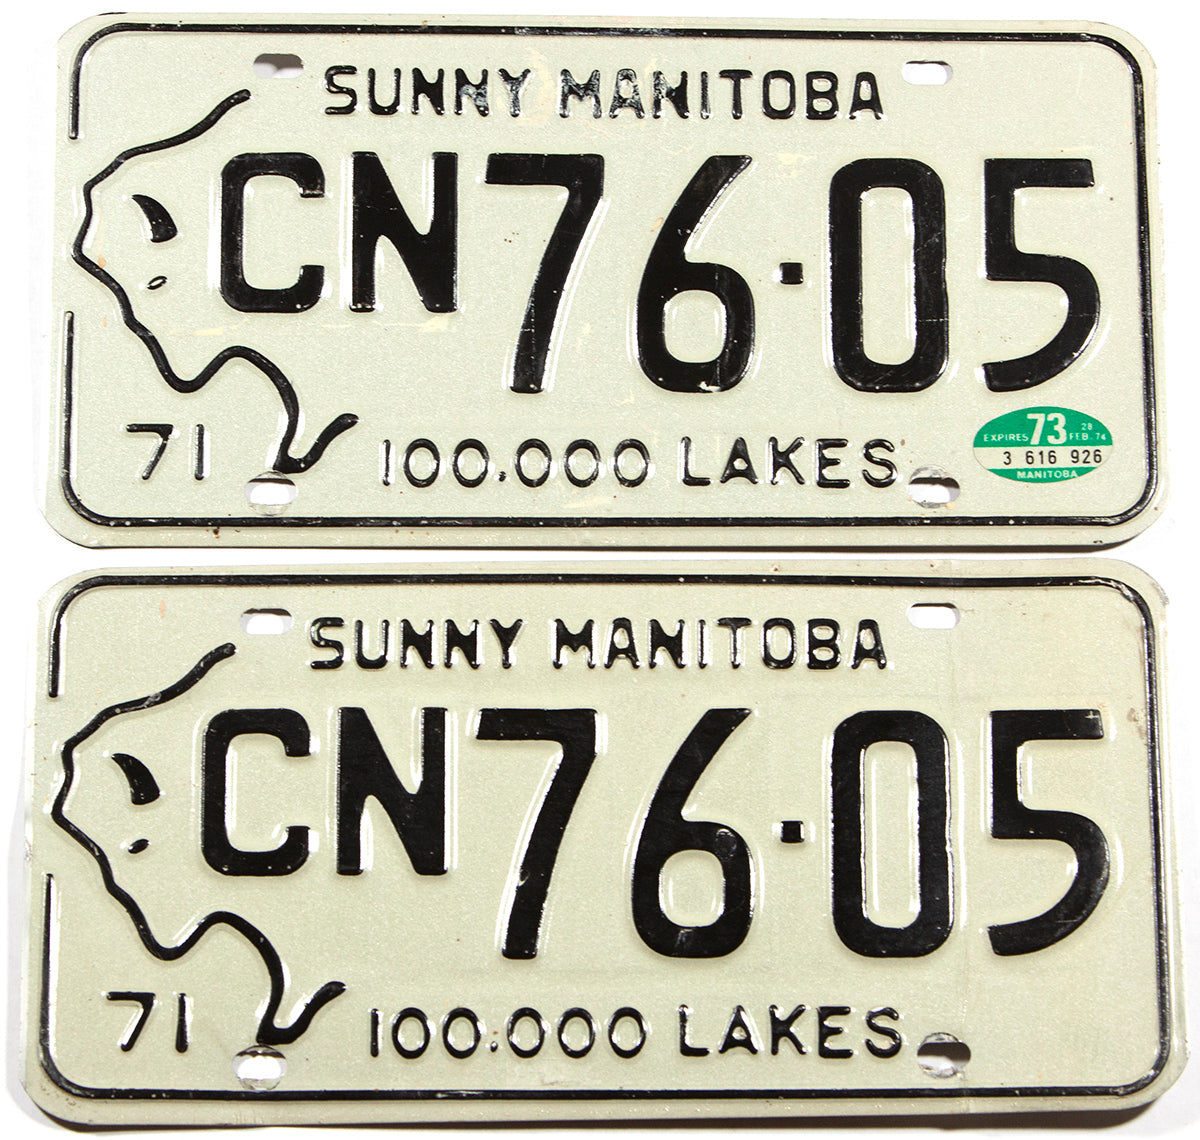 A classic pair of 1973 Manitoba passenger car license plates in very good plus condition